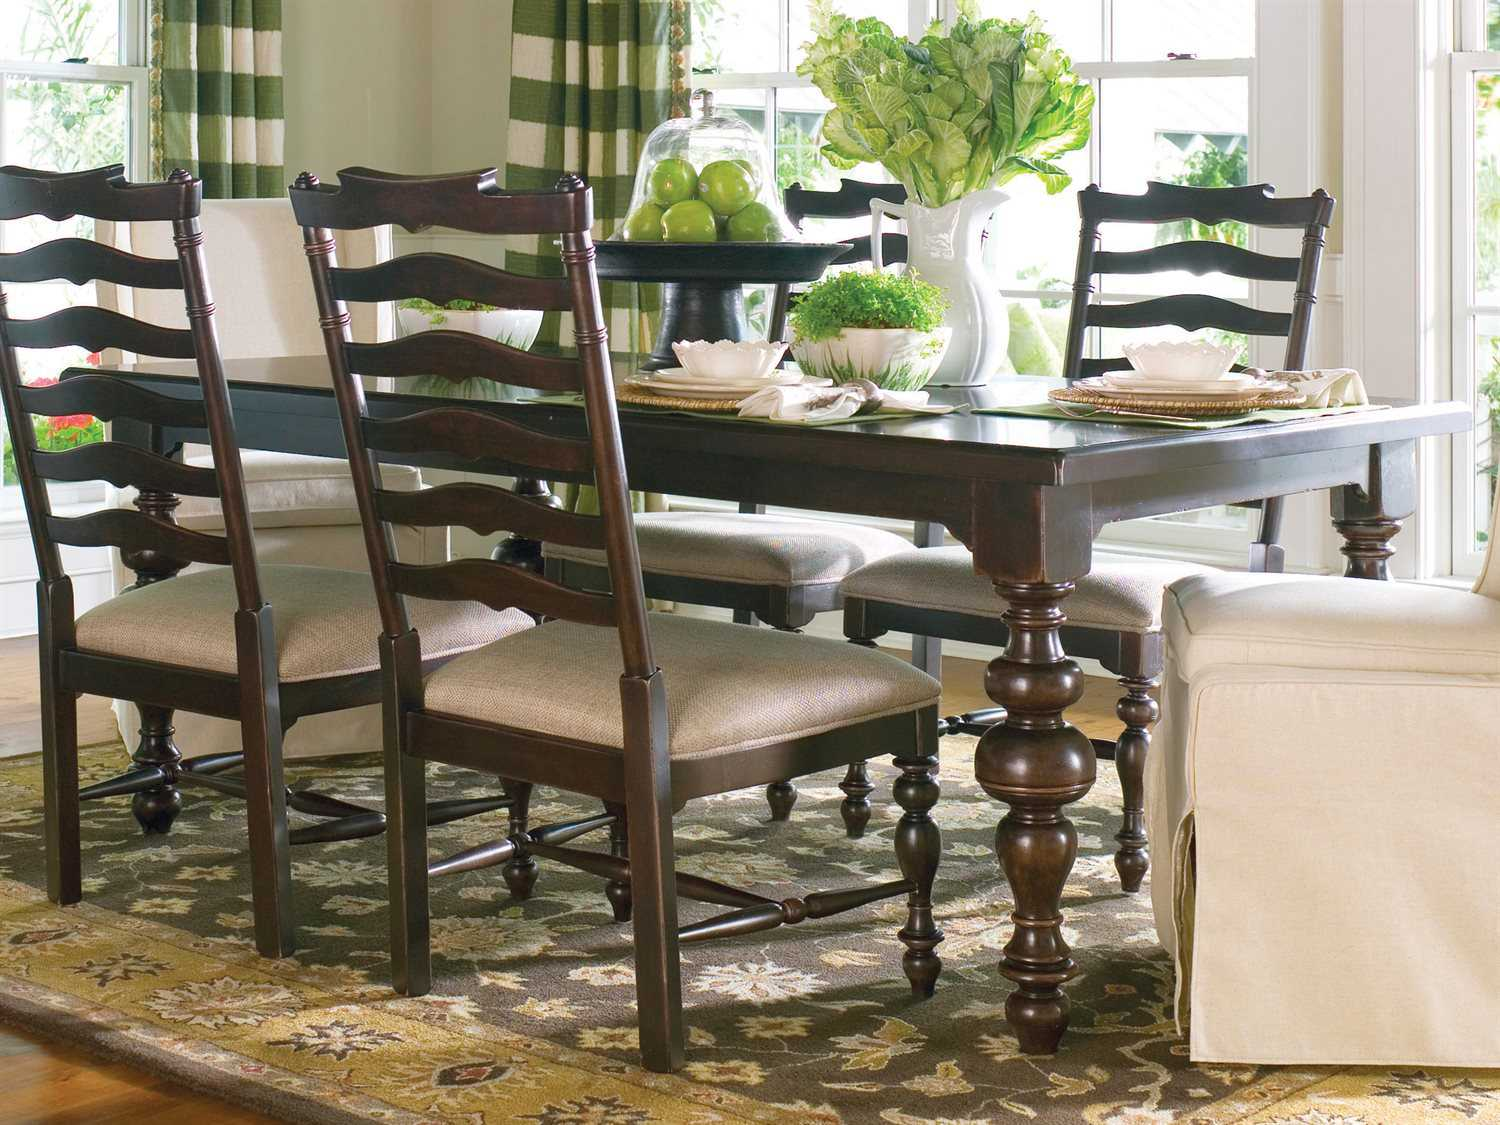 paula deen table and chairs electric chair videos home tobacco 76'' x 46'' rectangular dining | pdh932653